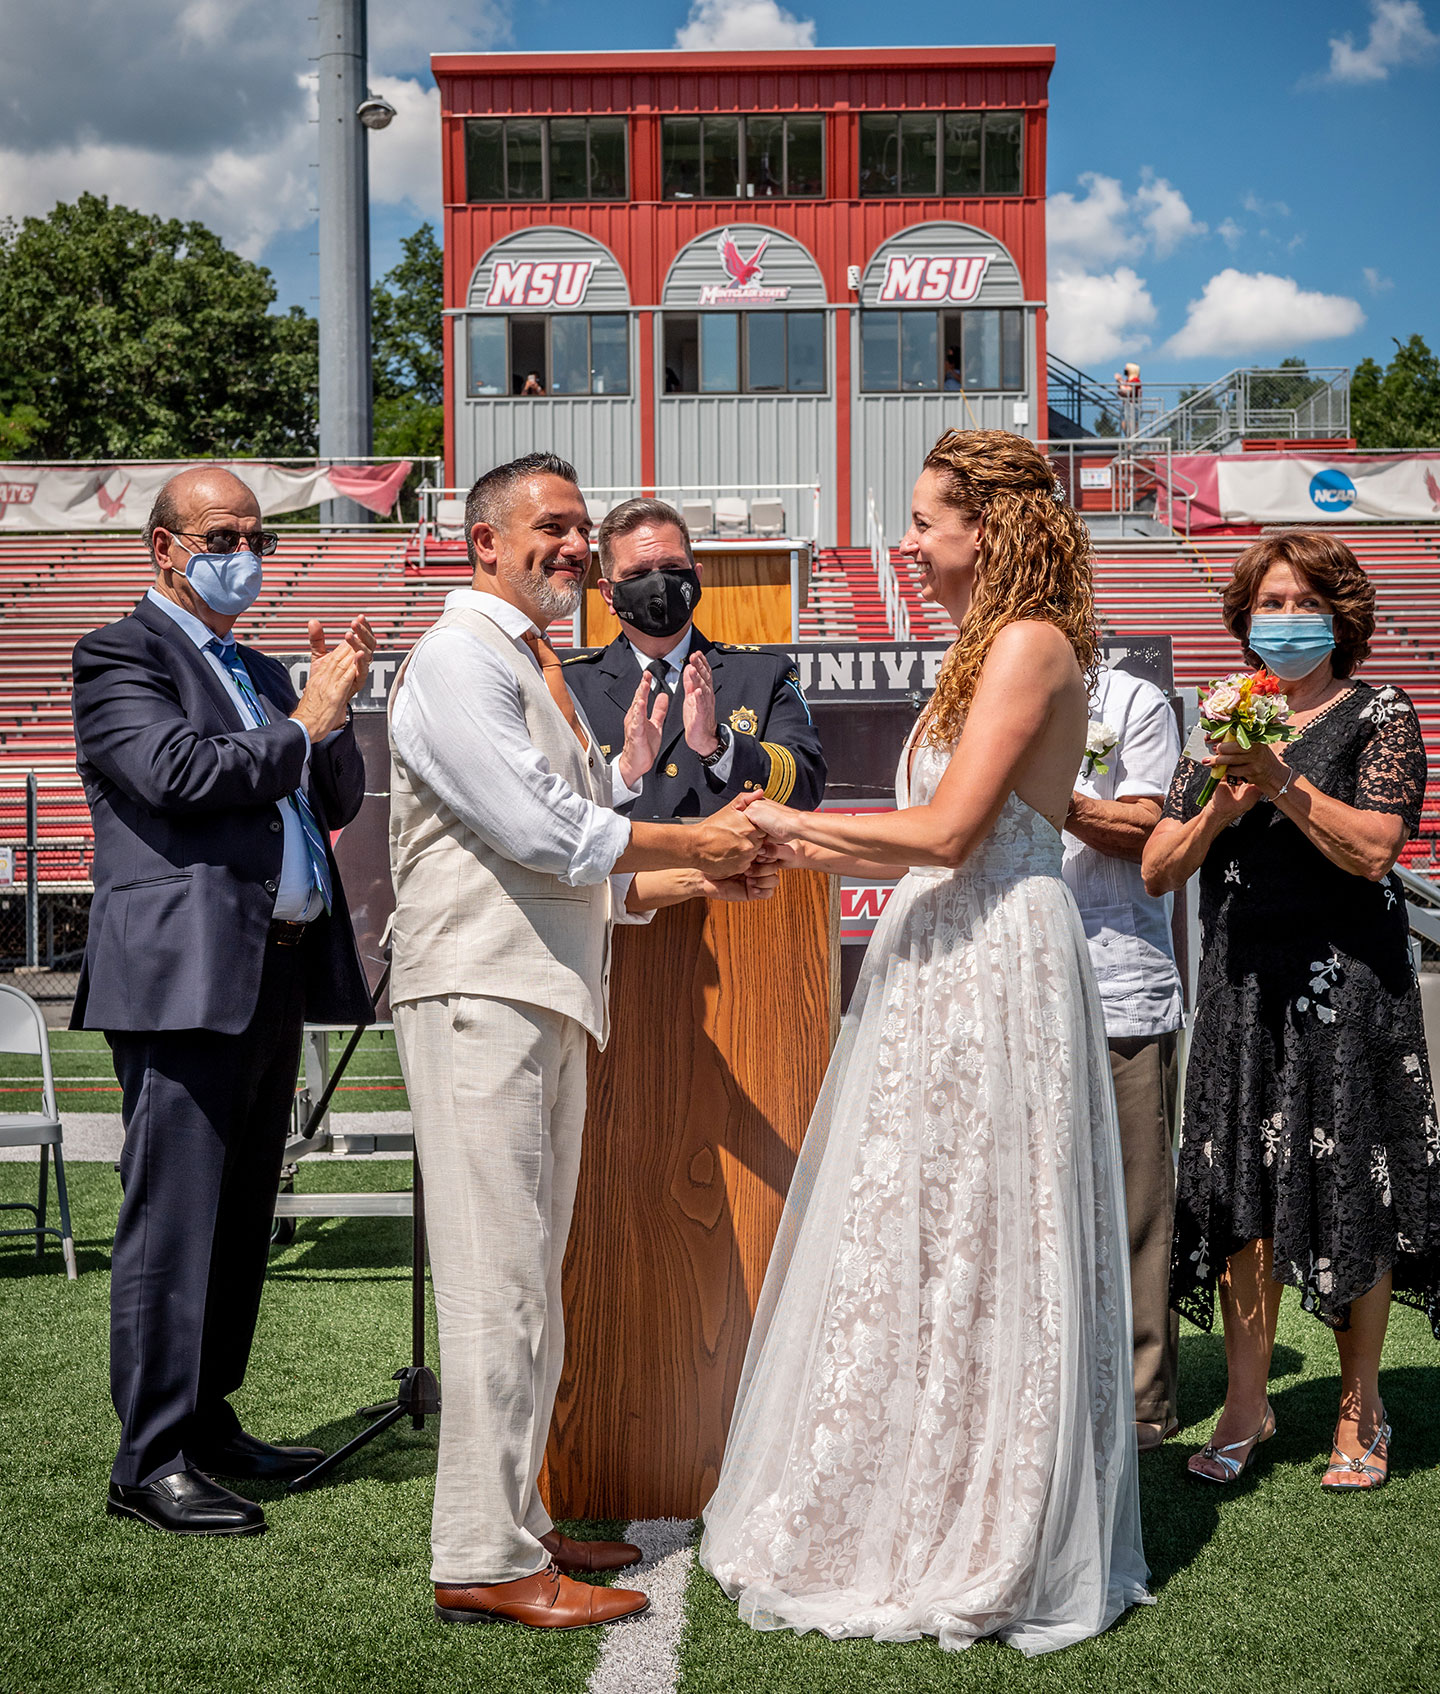 Chief of University Police Paul Cell officiates the wedding of Janet Fenner and Gregory Dabice on the Montclair State 50-yard line.